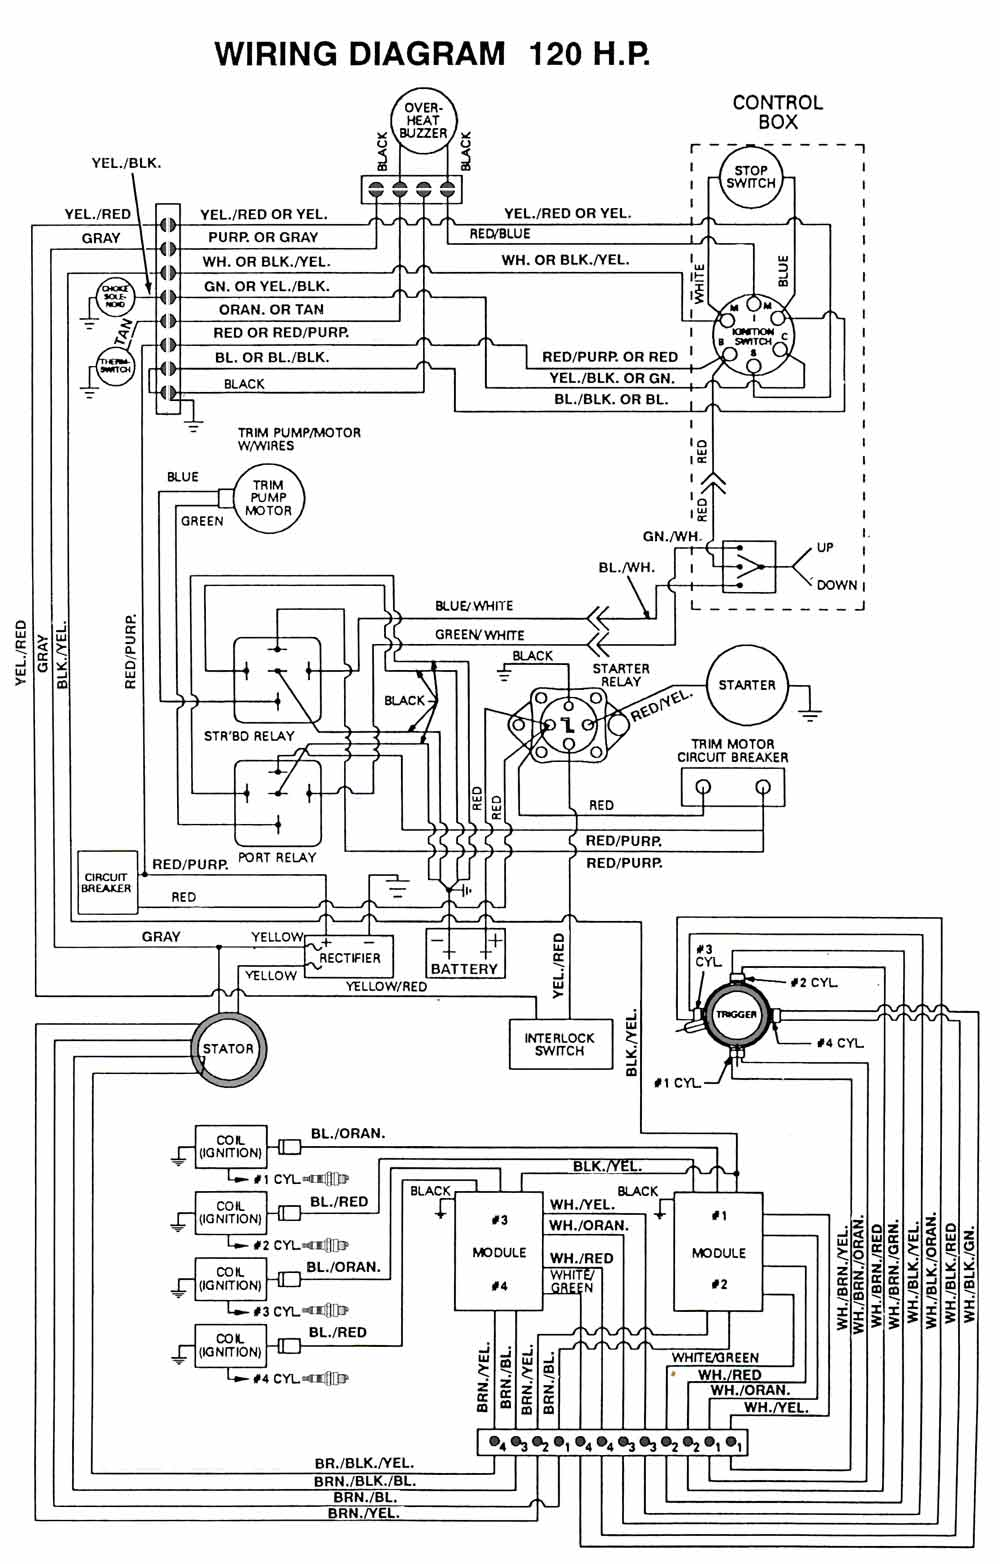 chrysler outboard wiring diagrams mastertech marine cyclone wiring diagram  force 120 hp thru 1991a models engine